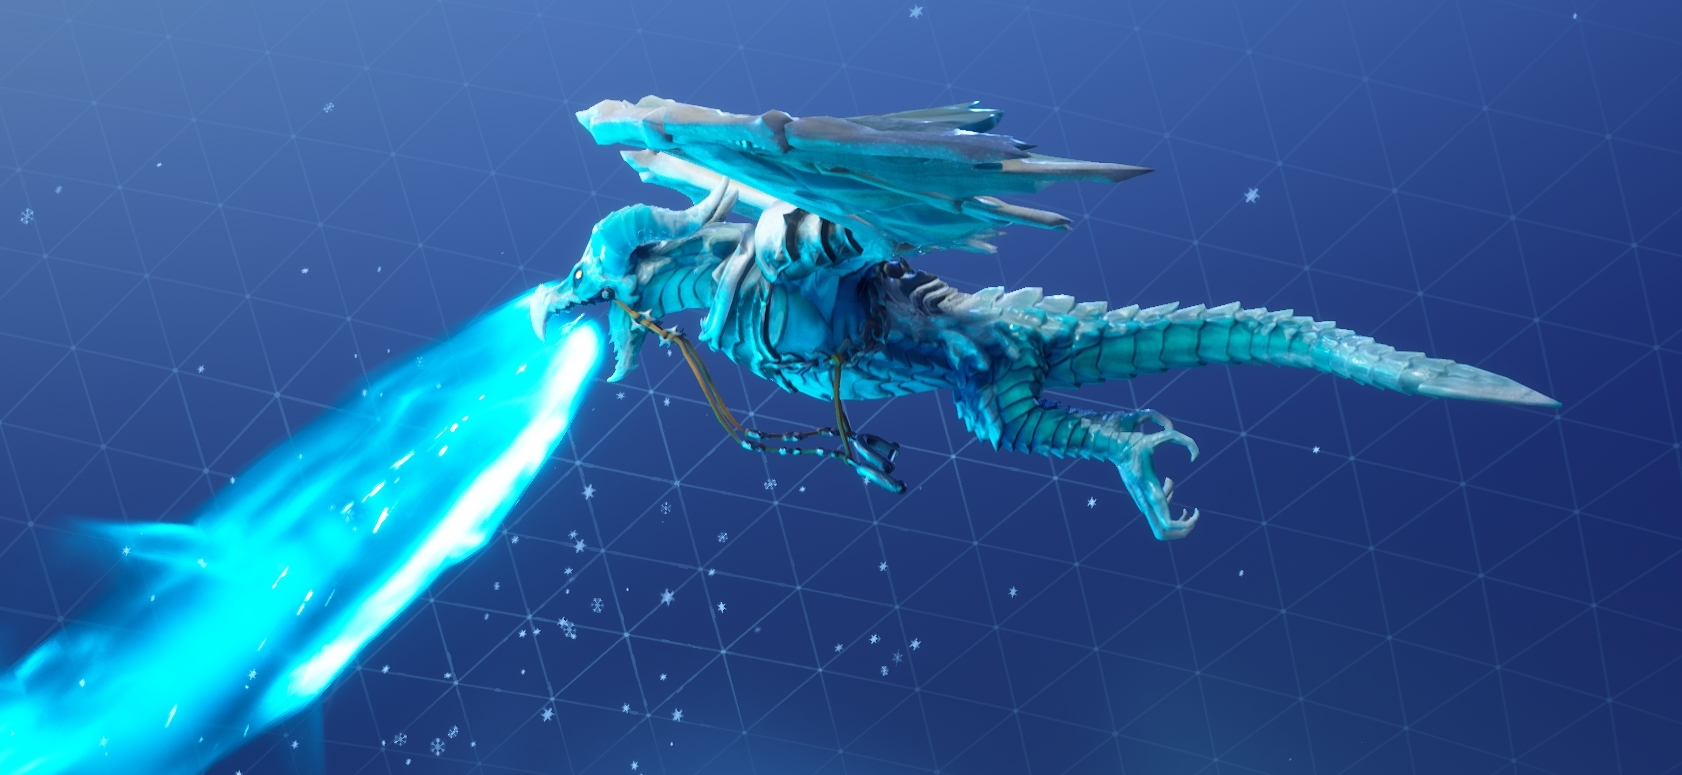 frostwing skin 3 - fortnite ice dragon glider